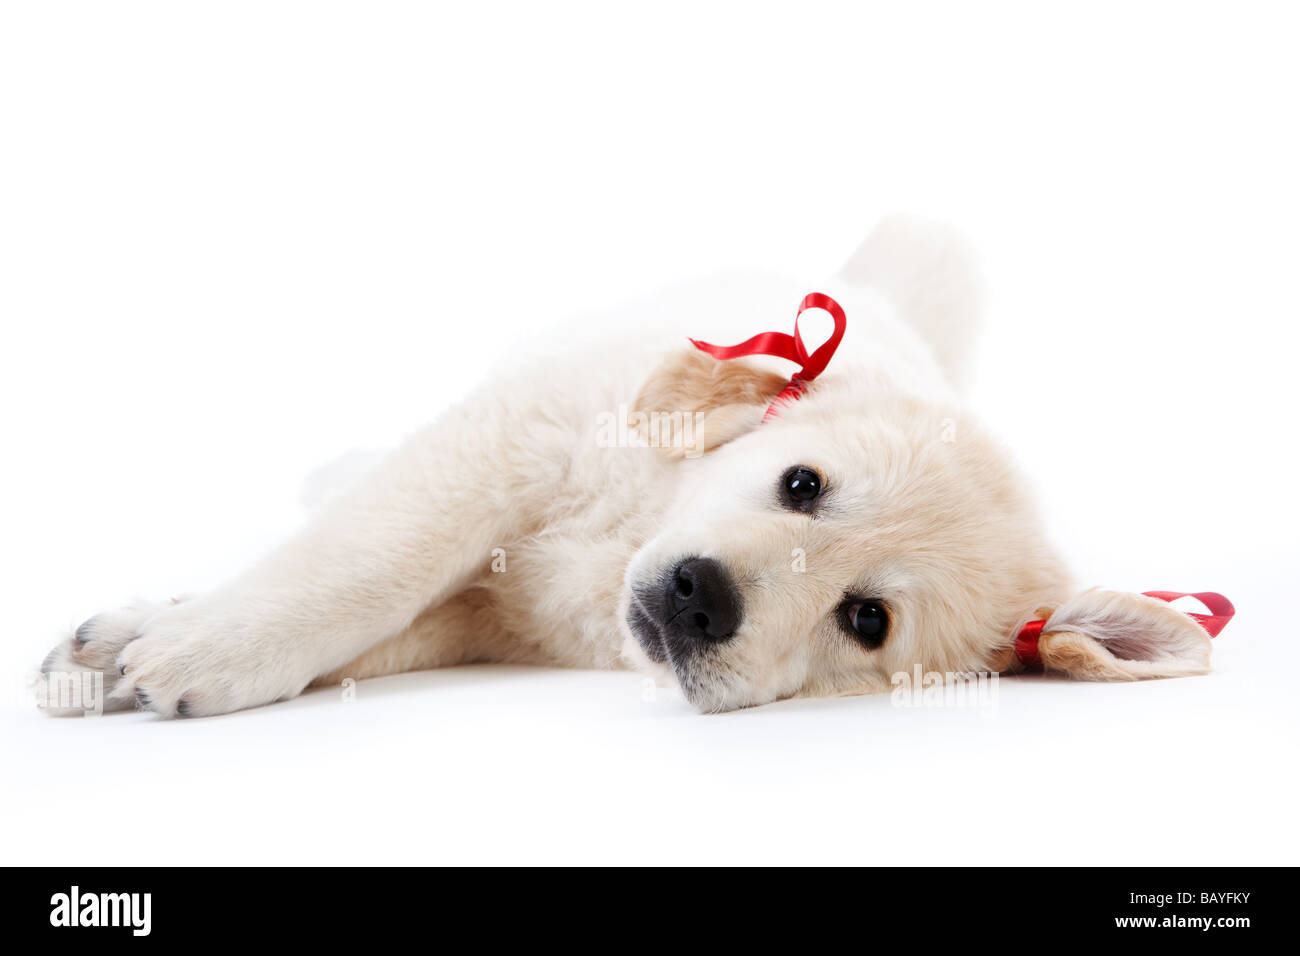 Tired cute retriever puppy resting with red bows - Stock Image